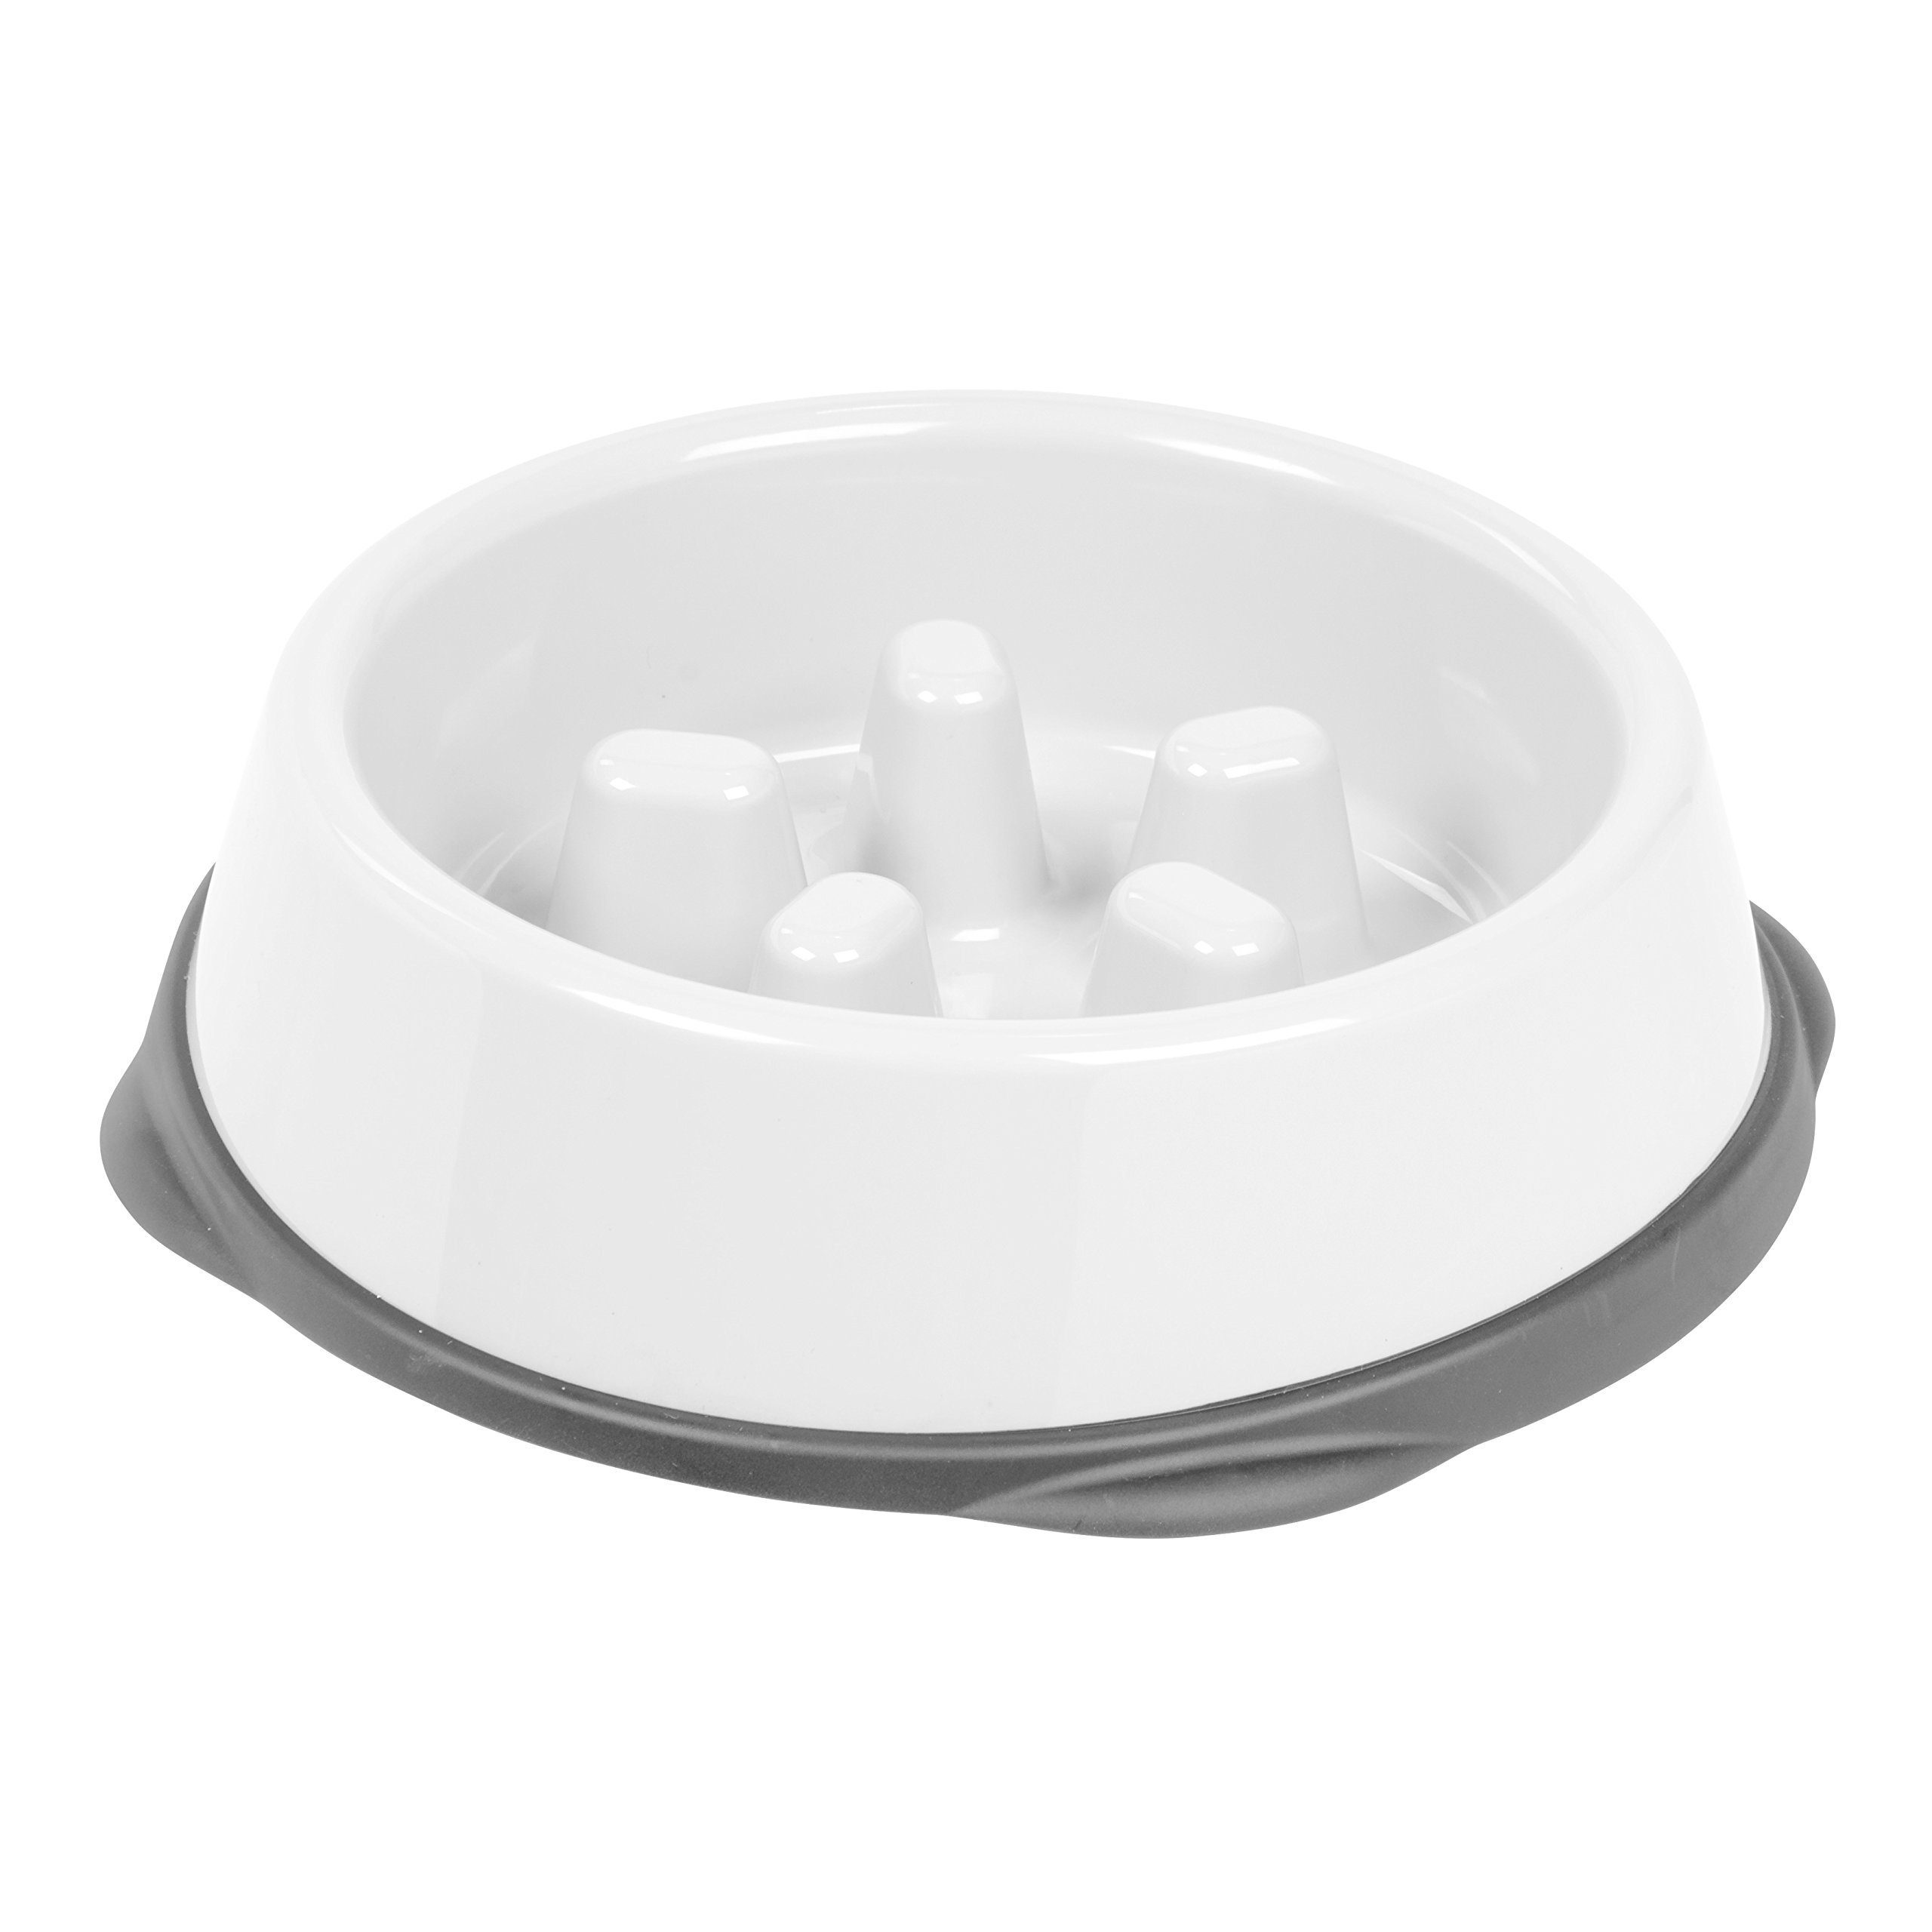 IRIS Slow Feeding Bowl for Short Snouted Pets, White/Gray